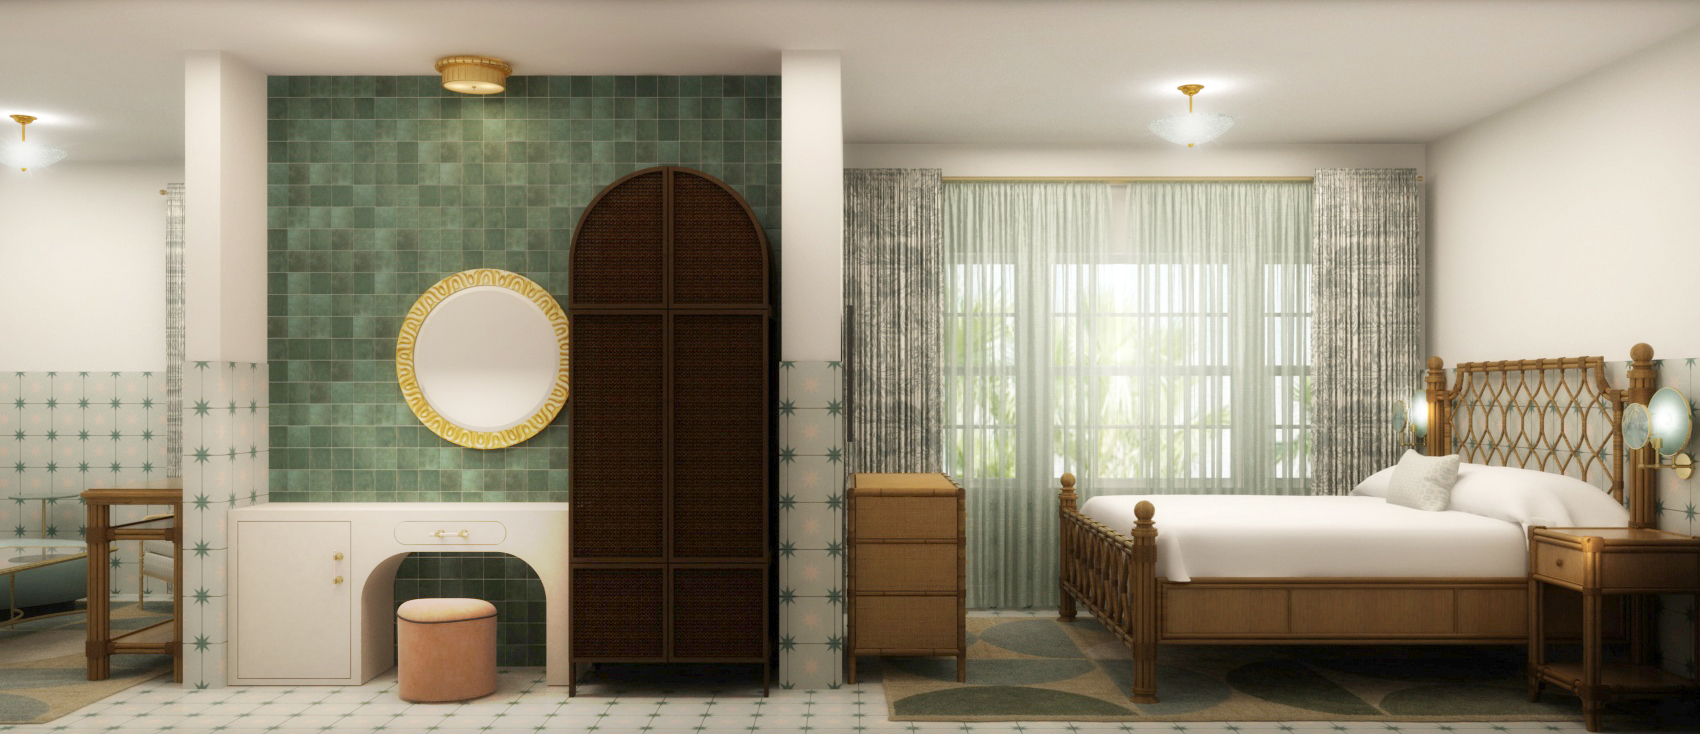 Hotel suite with bed, nightstand, dresser and vanity table with mirror